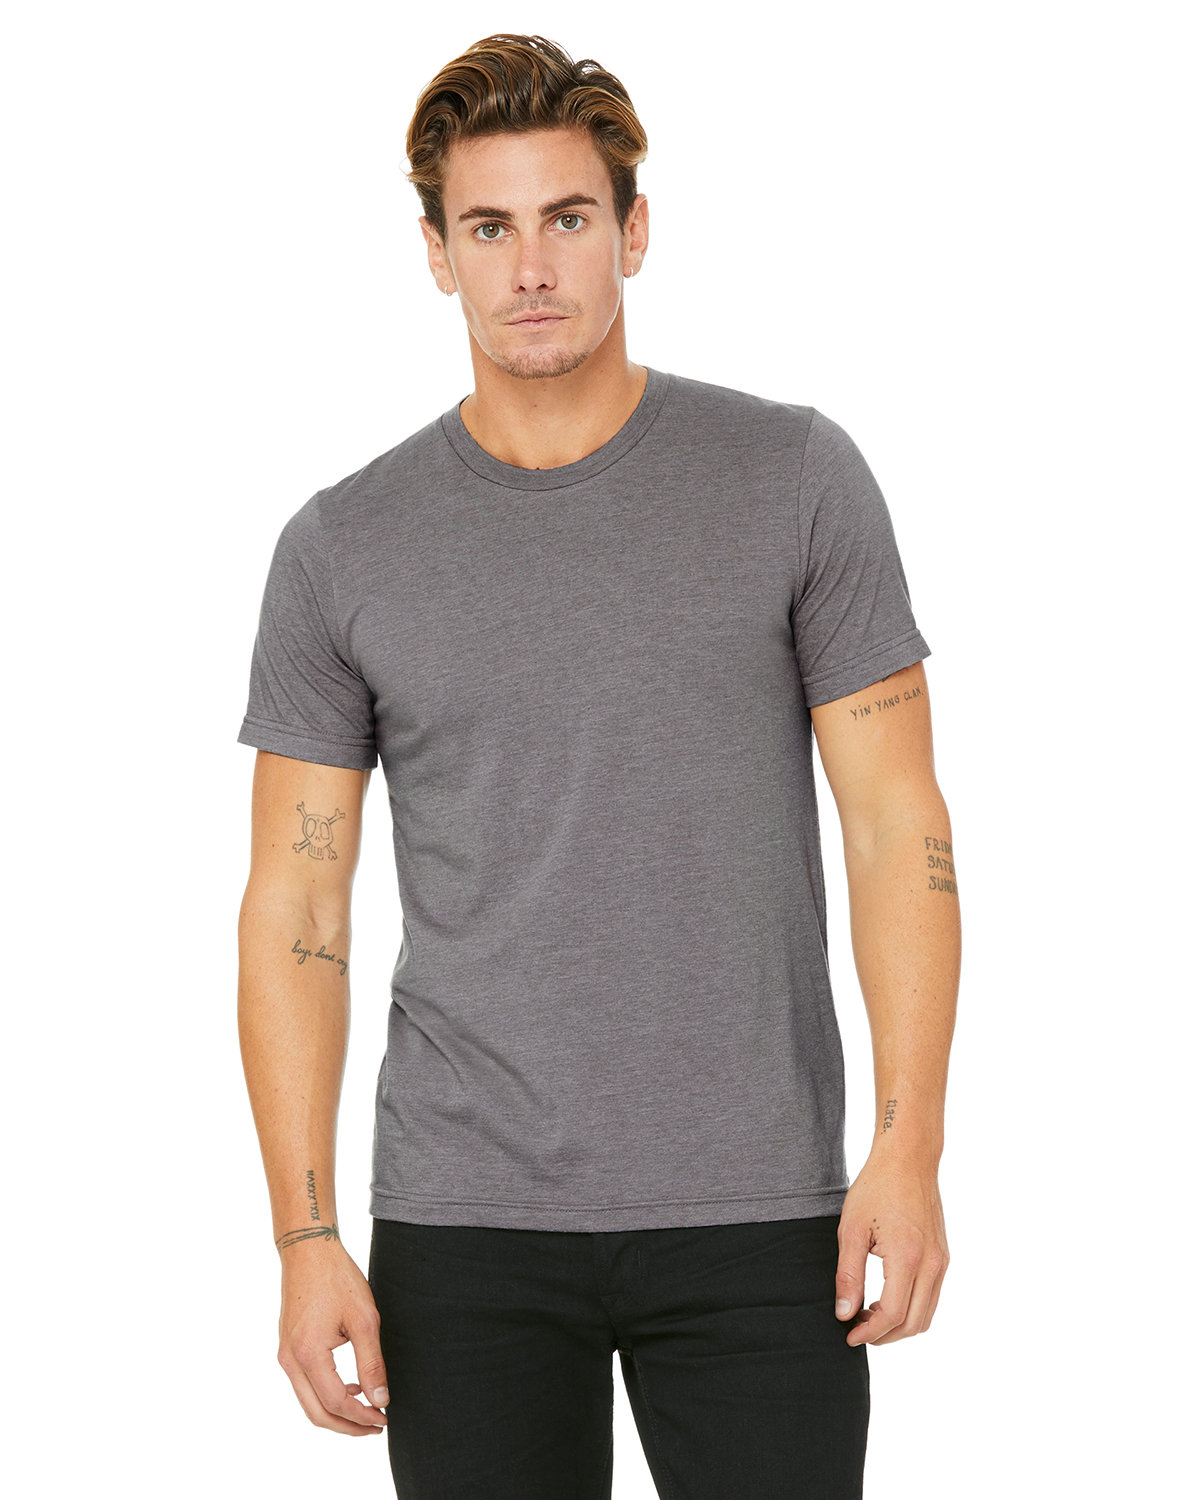 Bella + Canvas Unisex Heather CVC T-Shirt HEATHER STORM